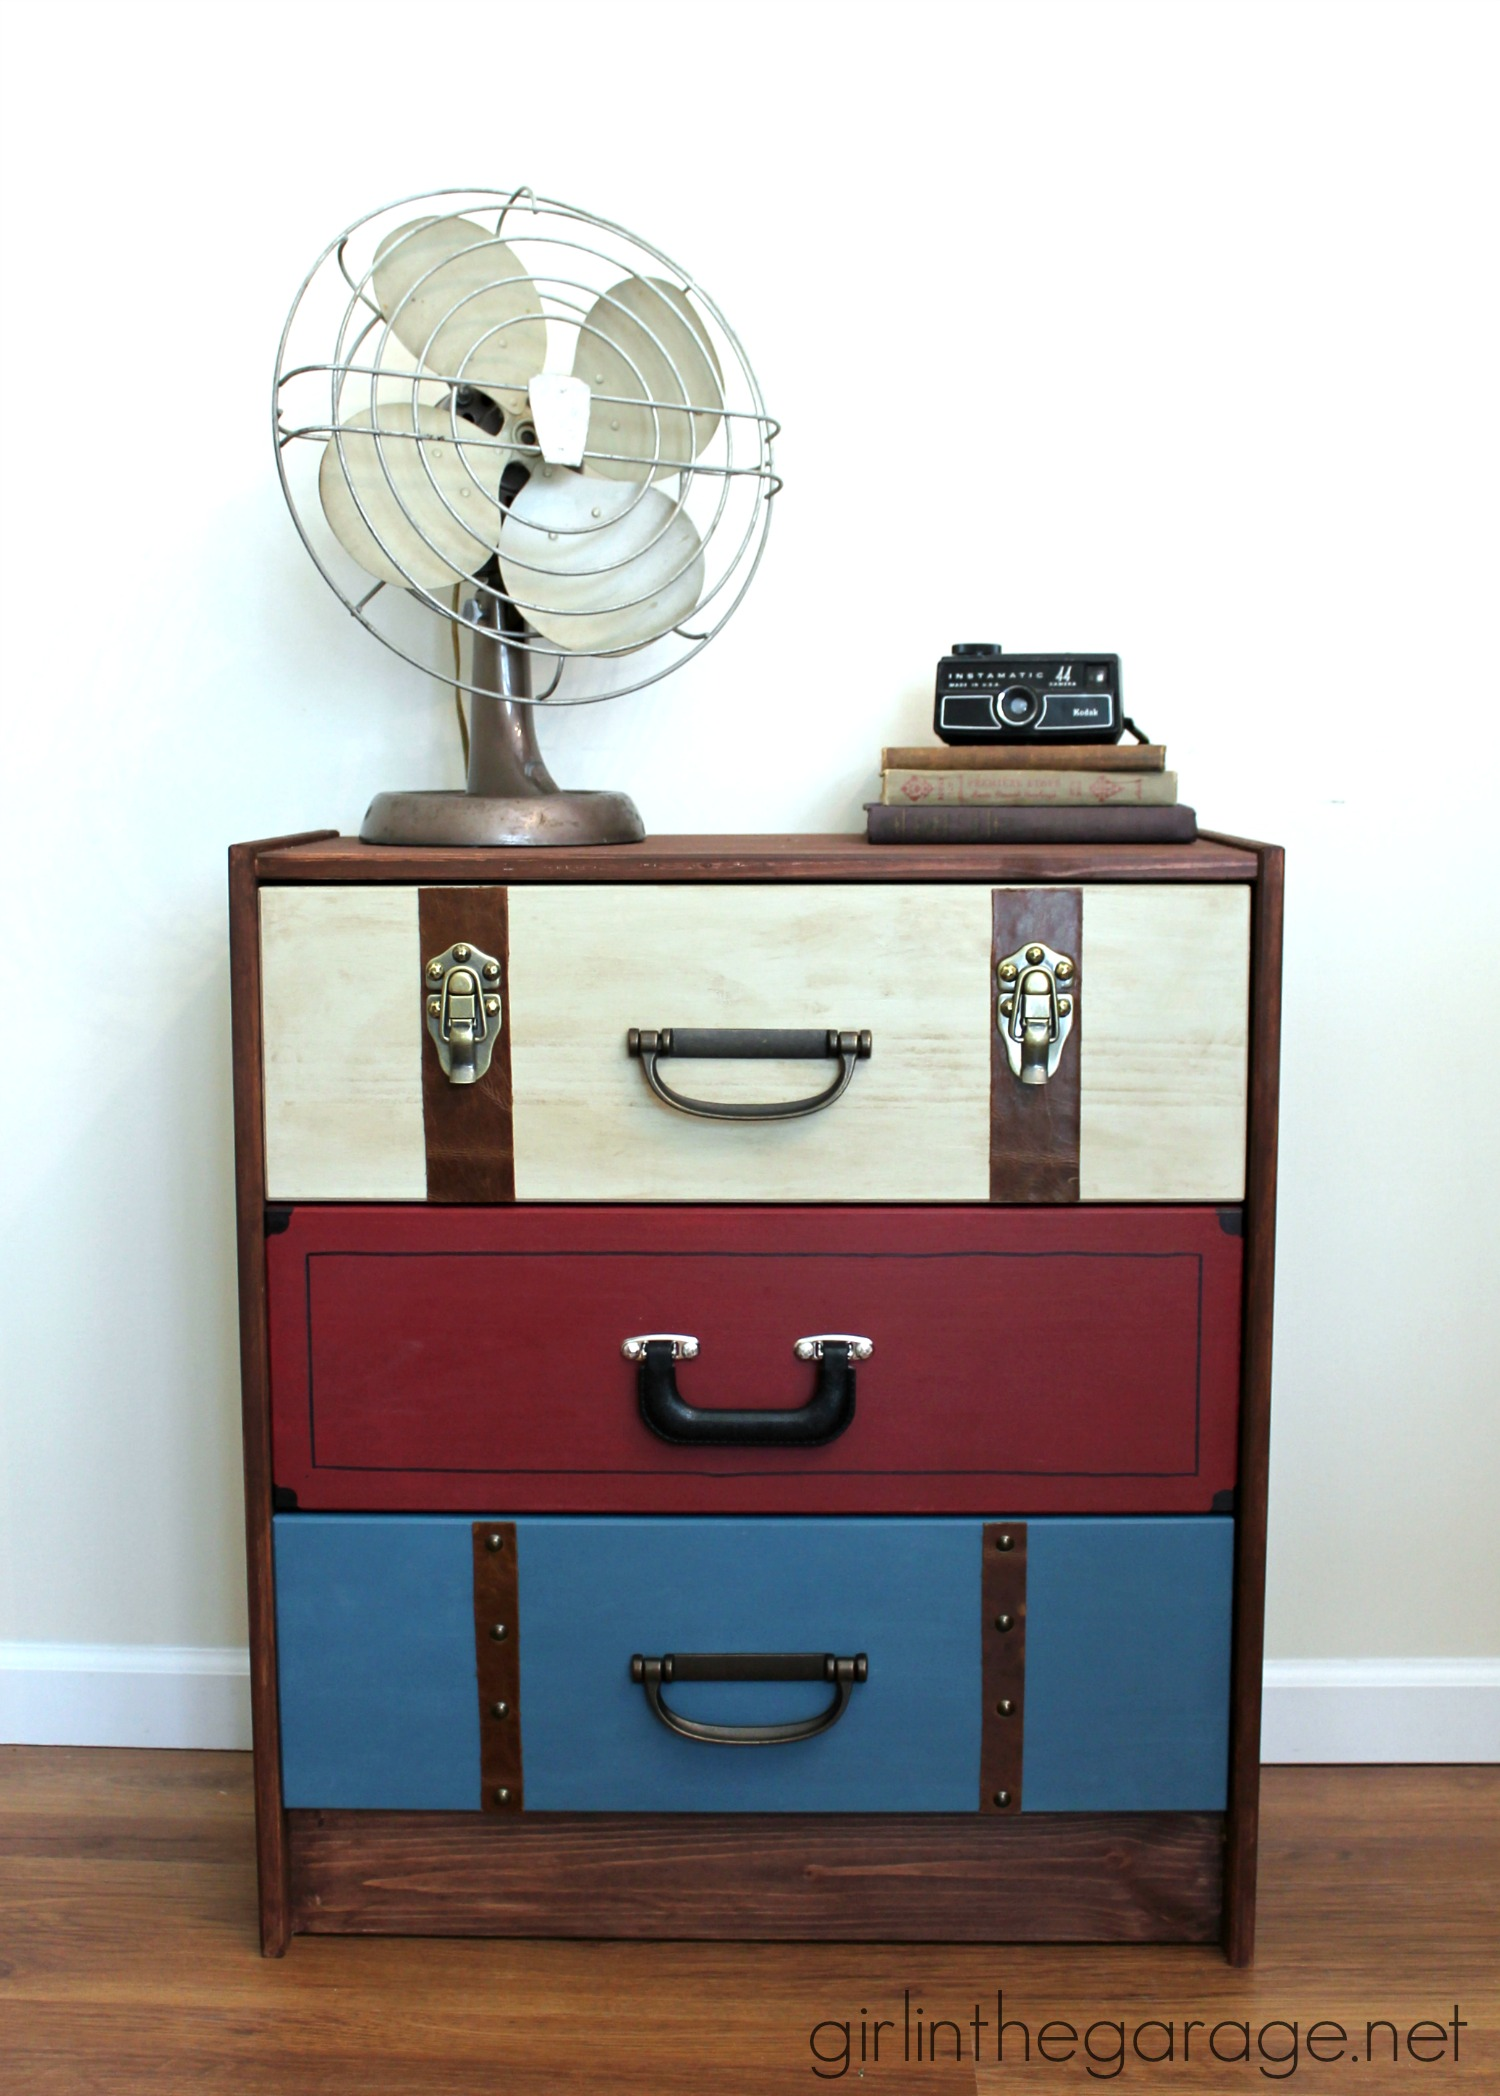 Suitcase Dresser IKEA RAST Hack Girl In The Garage